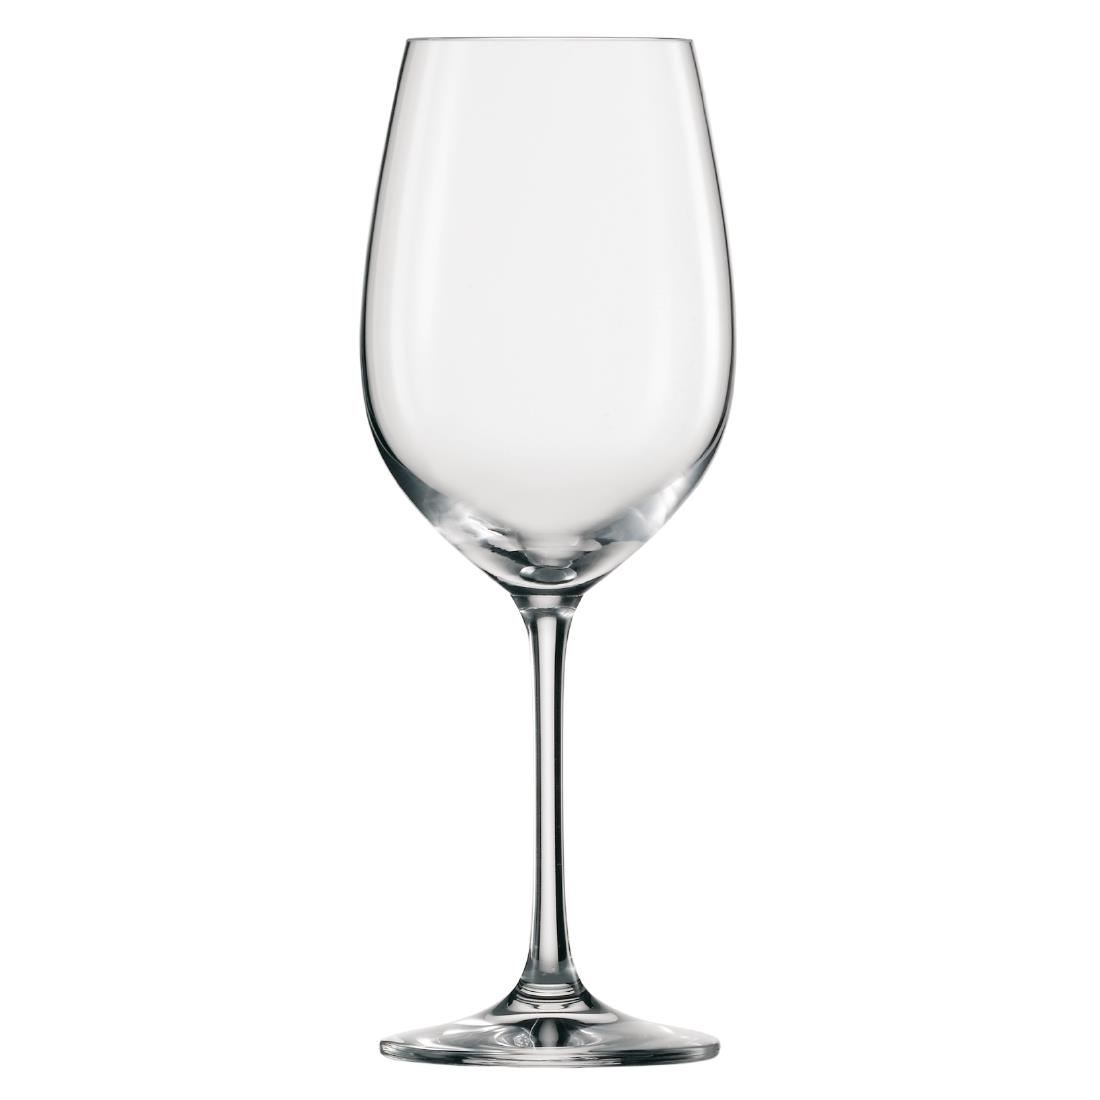 Schott Zwiesel Ivento White Wine glass 340ml (Pack of 6) Pack of 6 Image